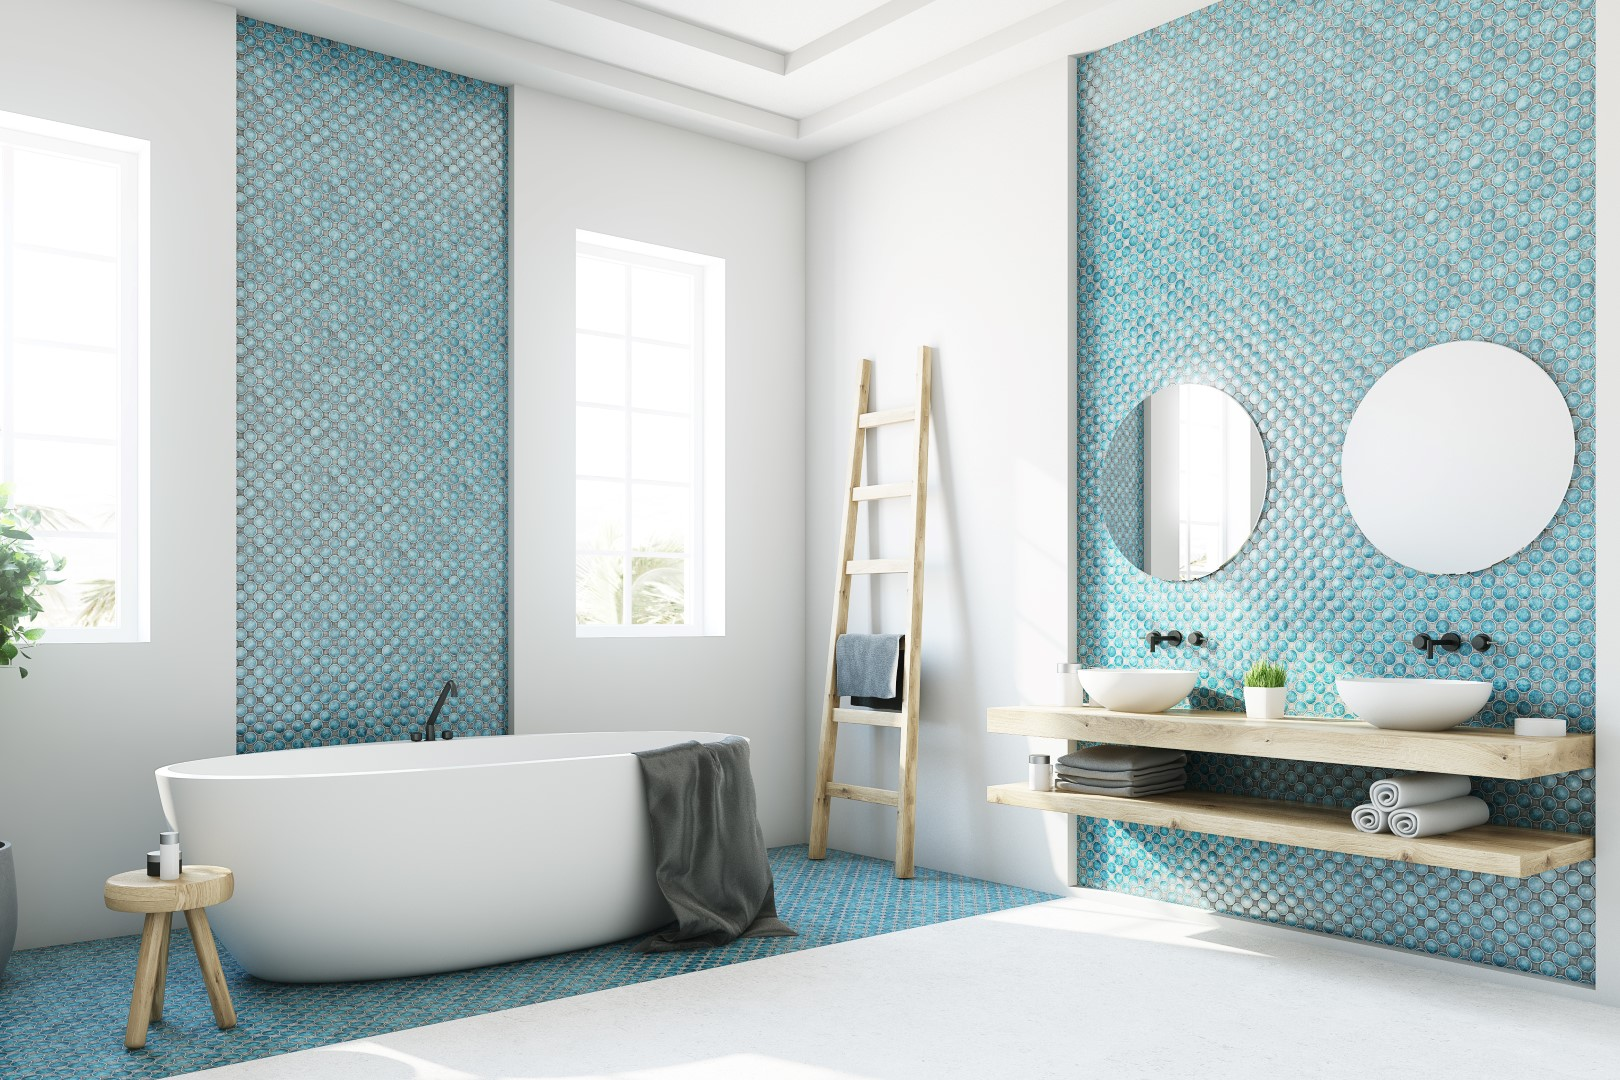 glamorous bathroom tile trends 2020 | Top 10 Bathroom Trends for 2018 according to the experts ...